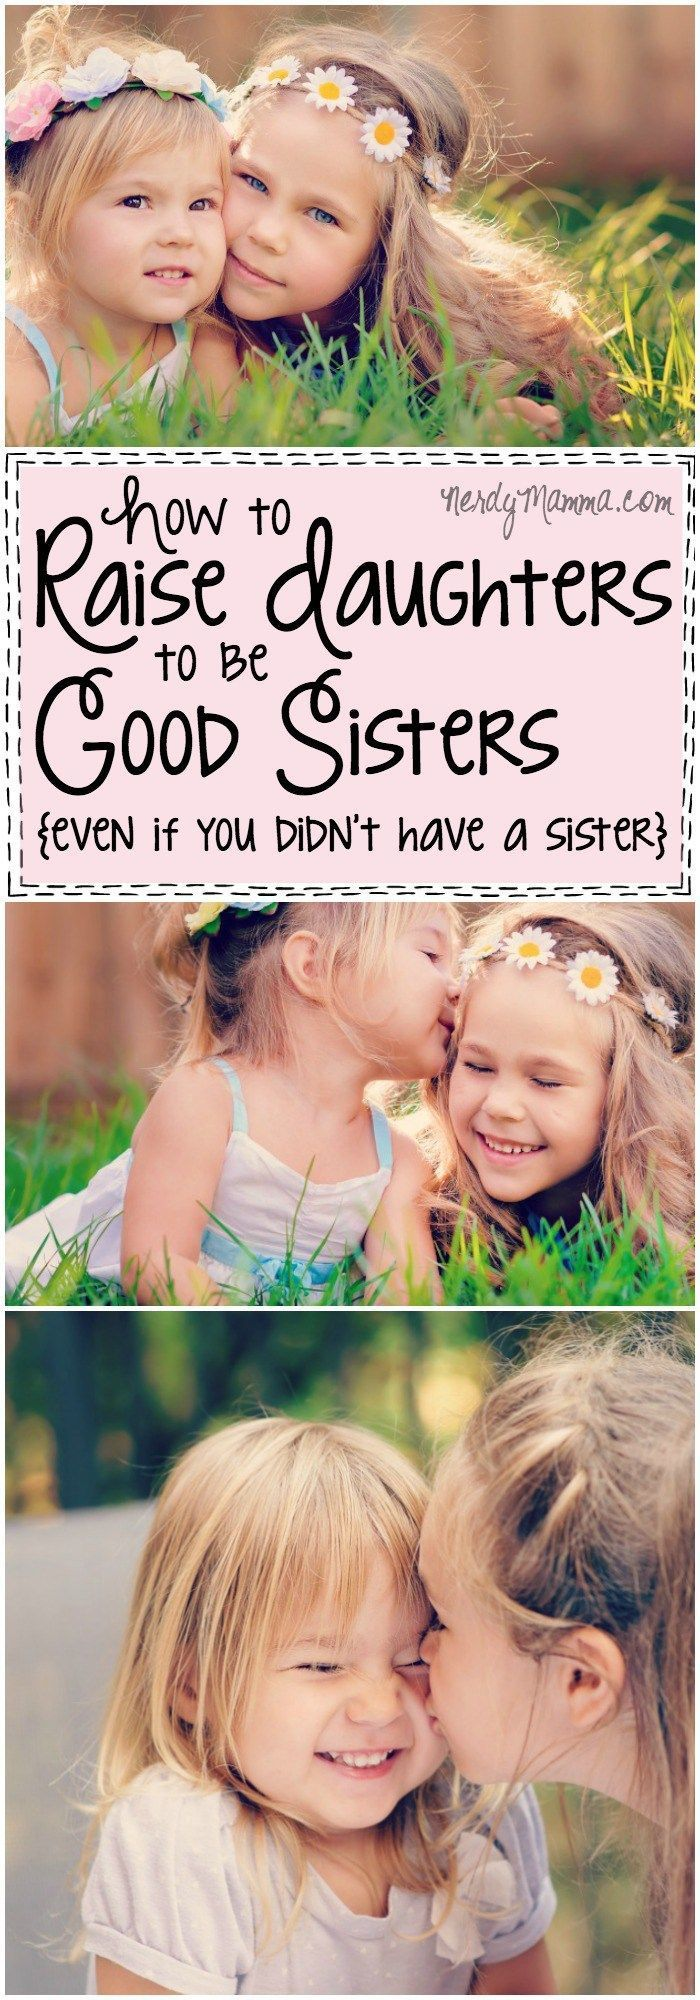 I love this parenting advice on how to raise daughters to be good sisters. I mean–I guess I've been over thinking it.